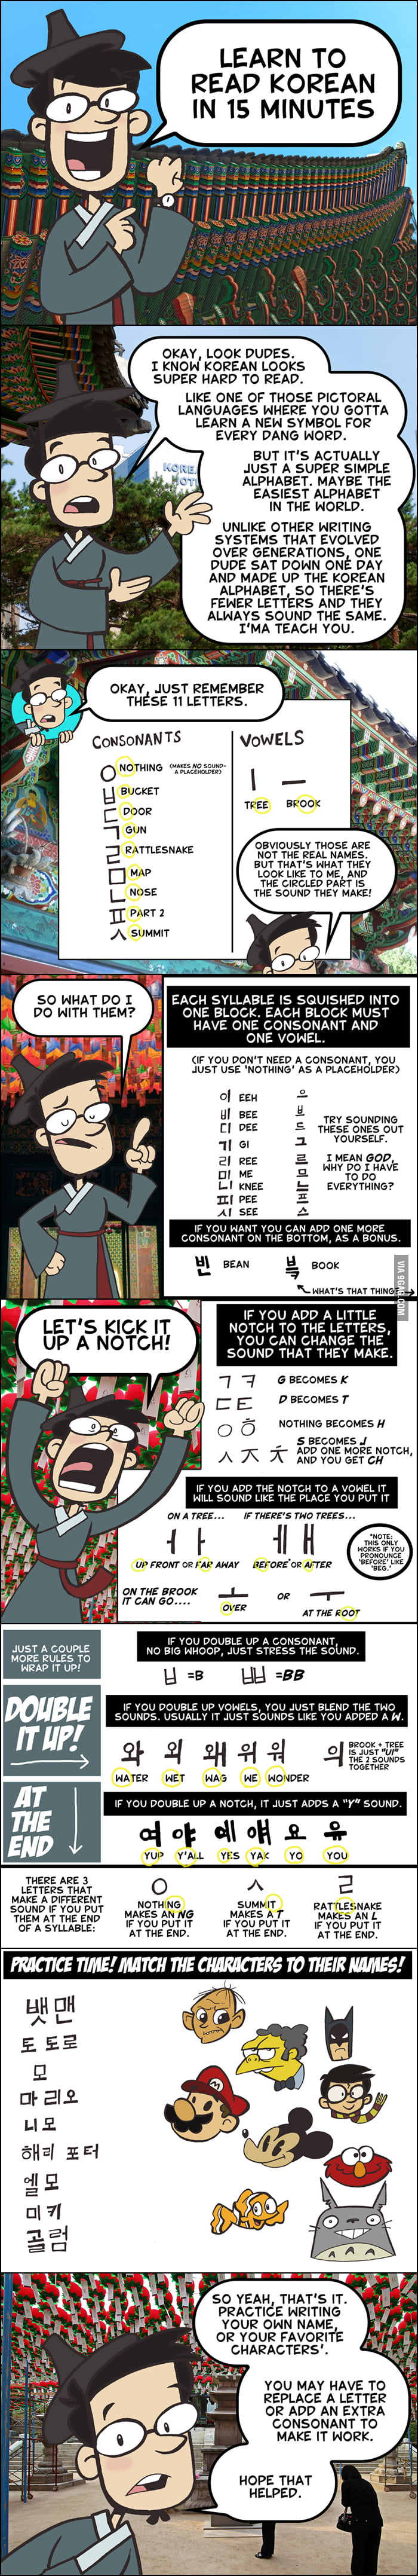 learn to read korean in 15 minutes 9gag